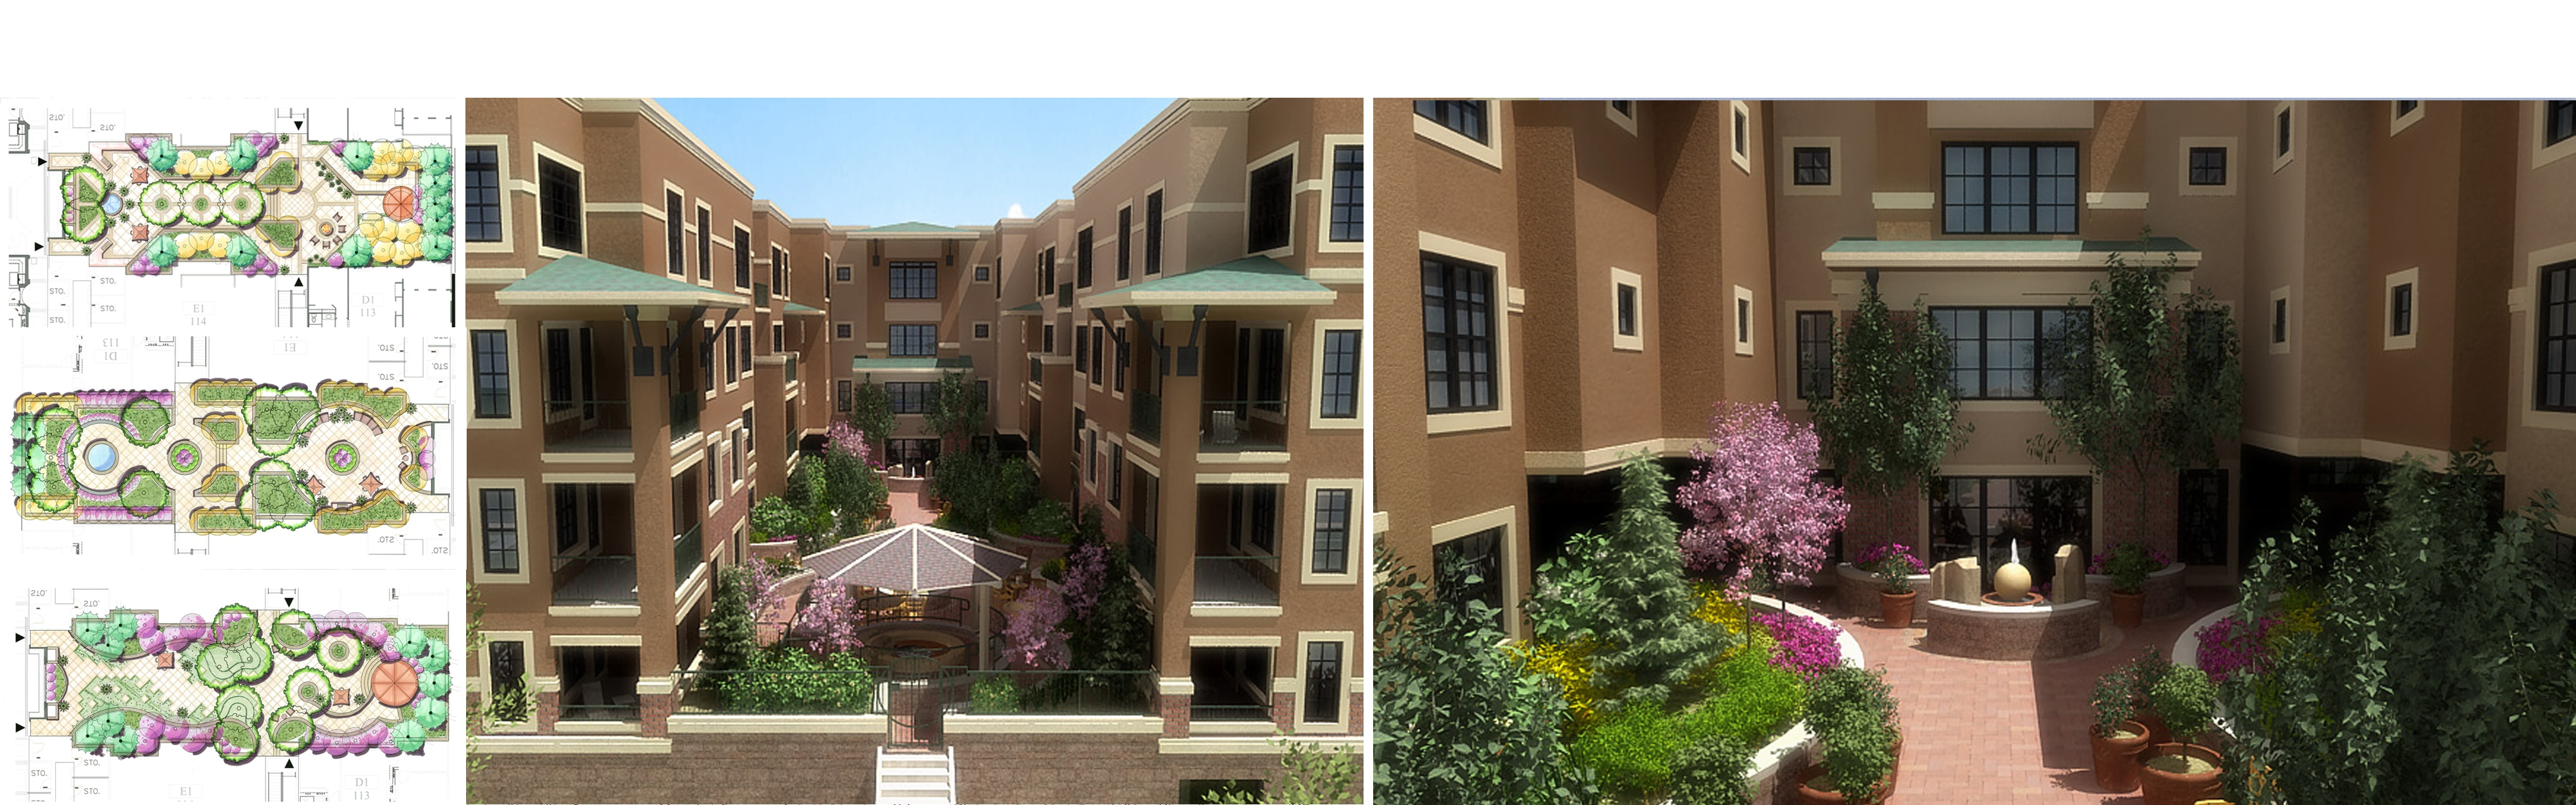 Multi-Family architecture solution provided from an architecture firm located in Colorado